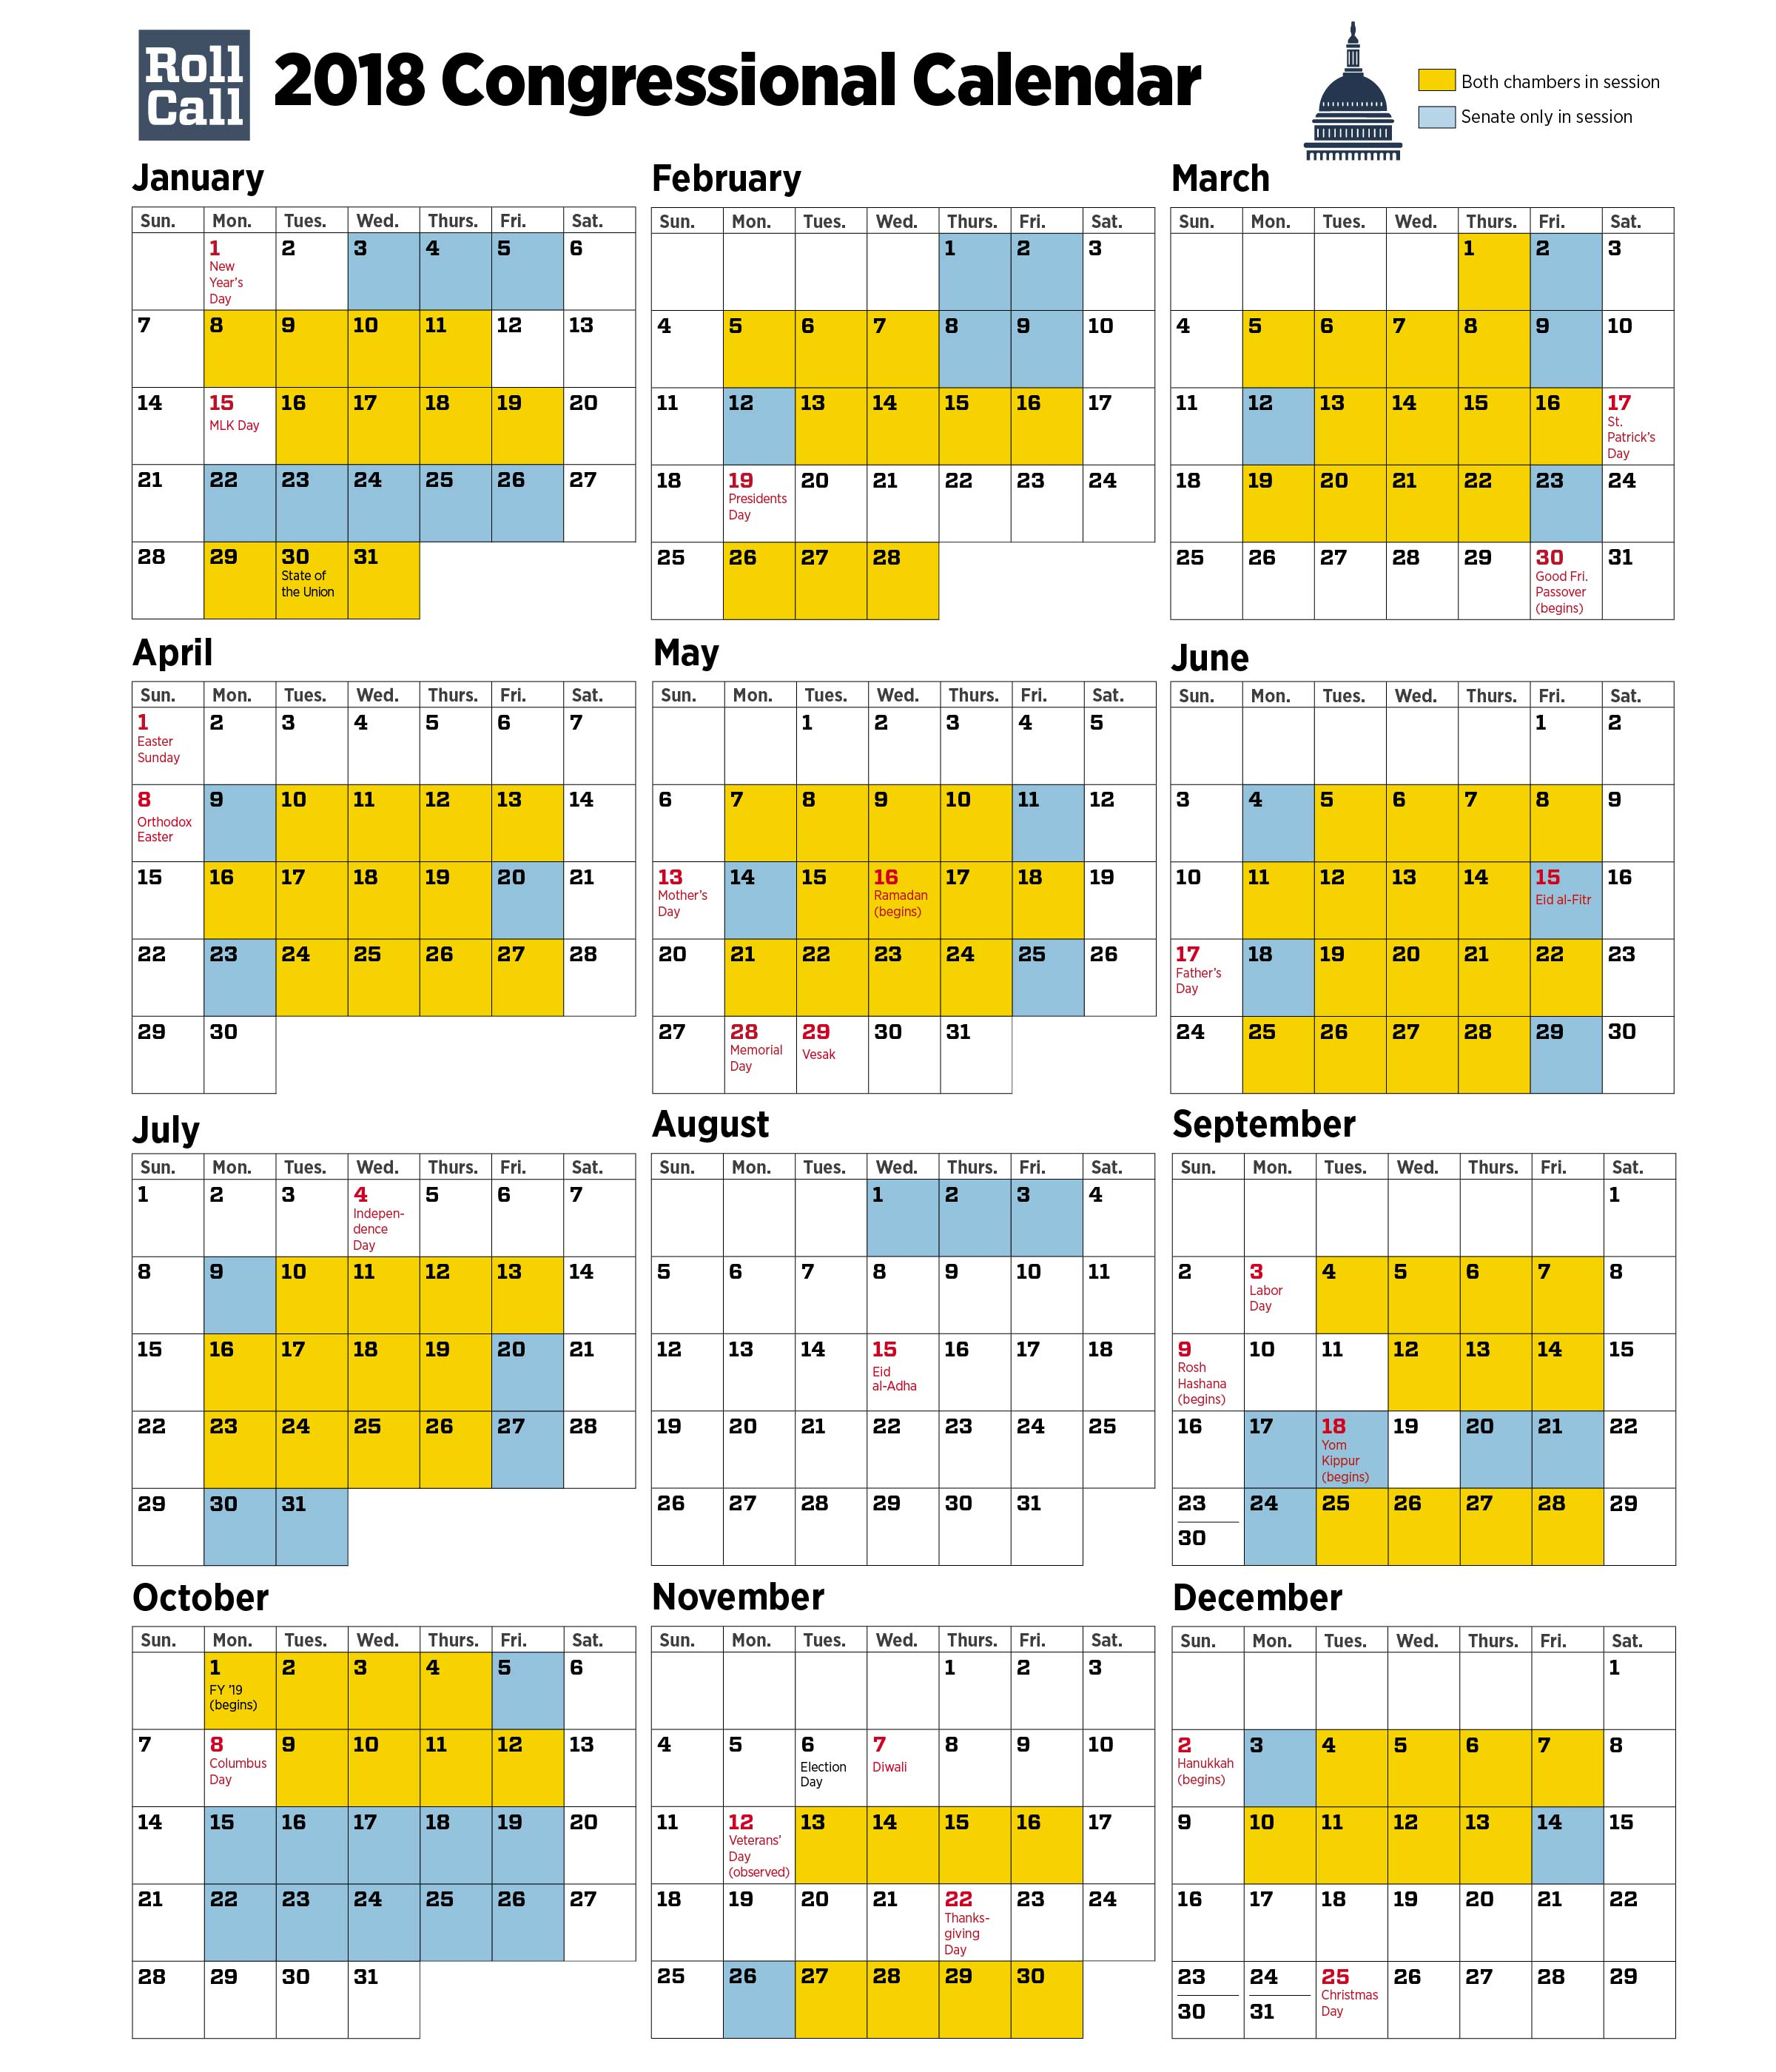 2018 Congressional Calendar: Senators Plan More Work Days Than House